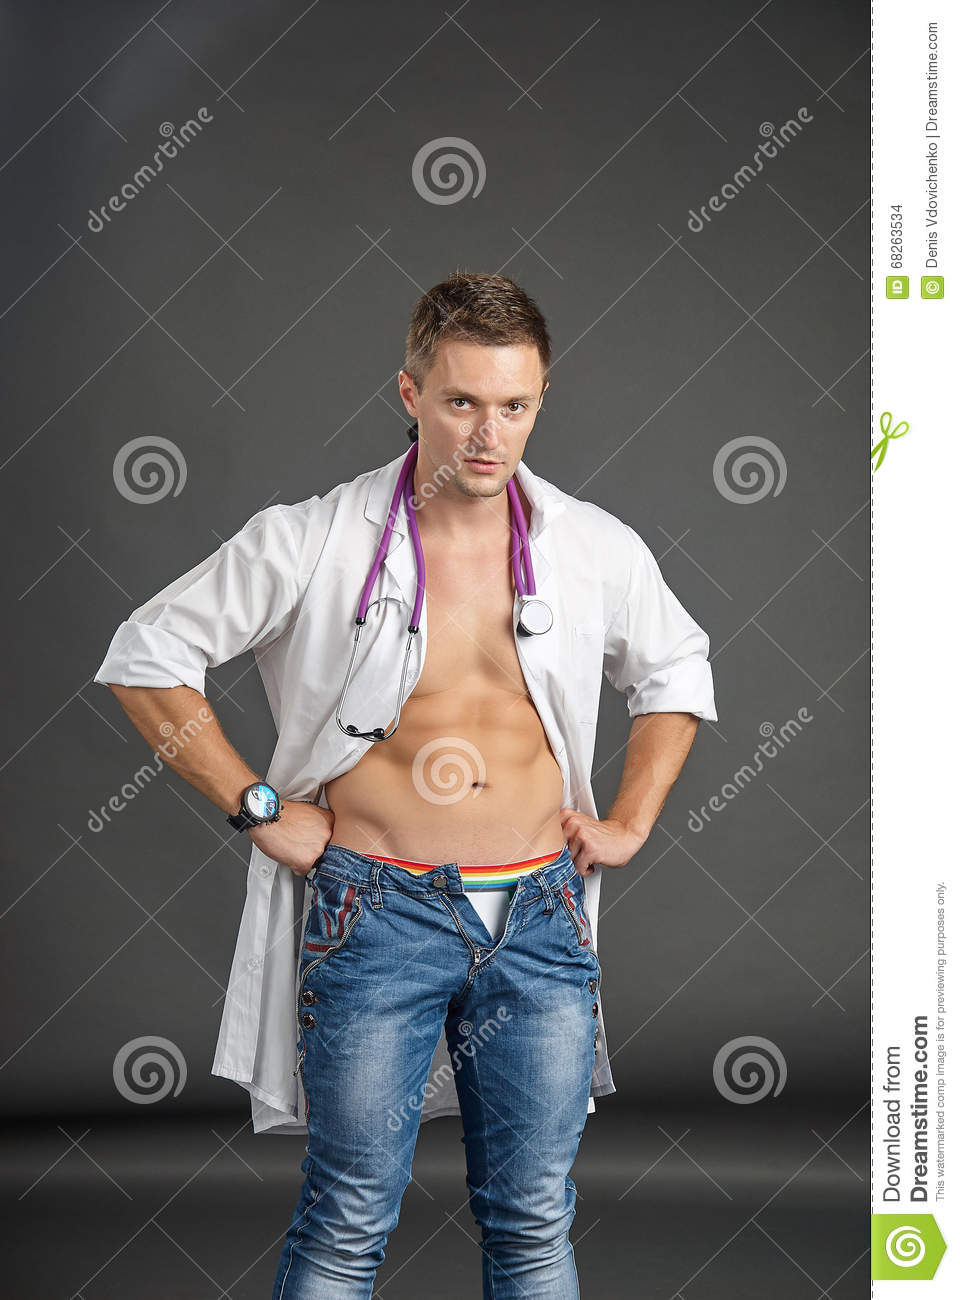 Portrait of a young man in doctor costume